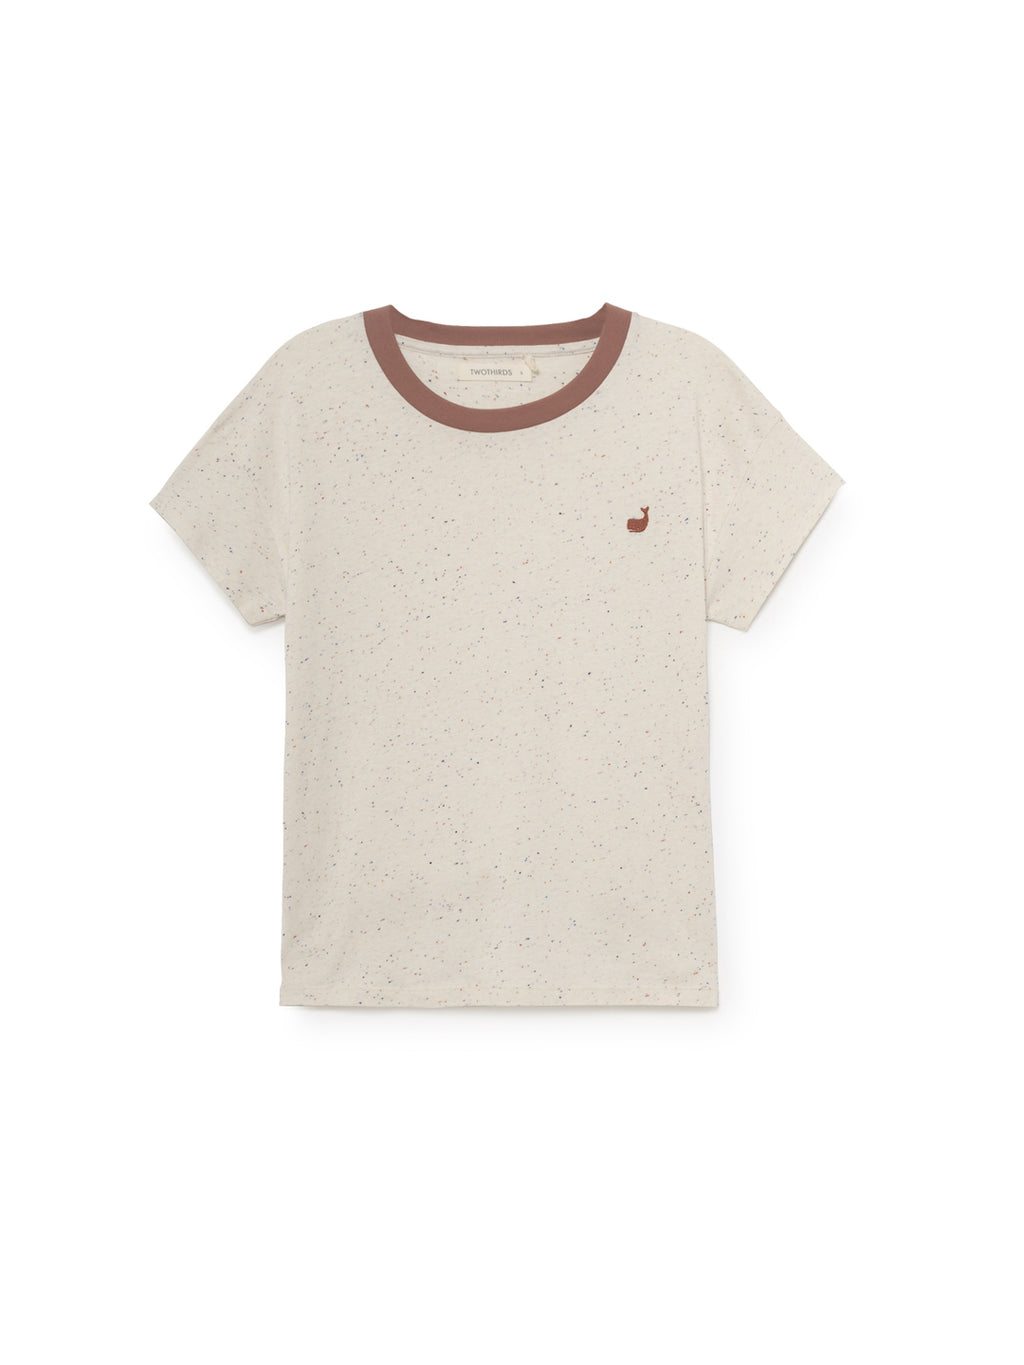 TWOTHIRDS Womens Tee: Ypsili - Ecrue front